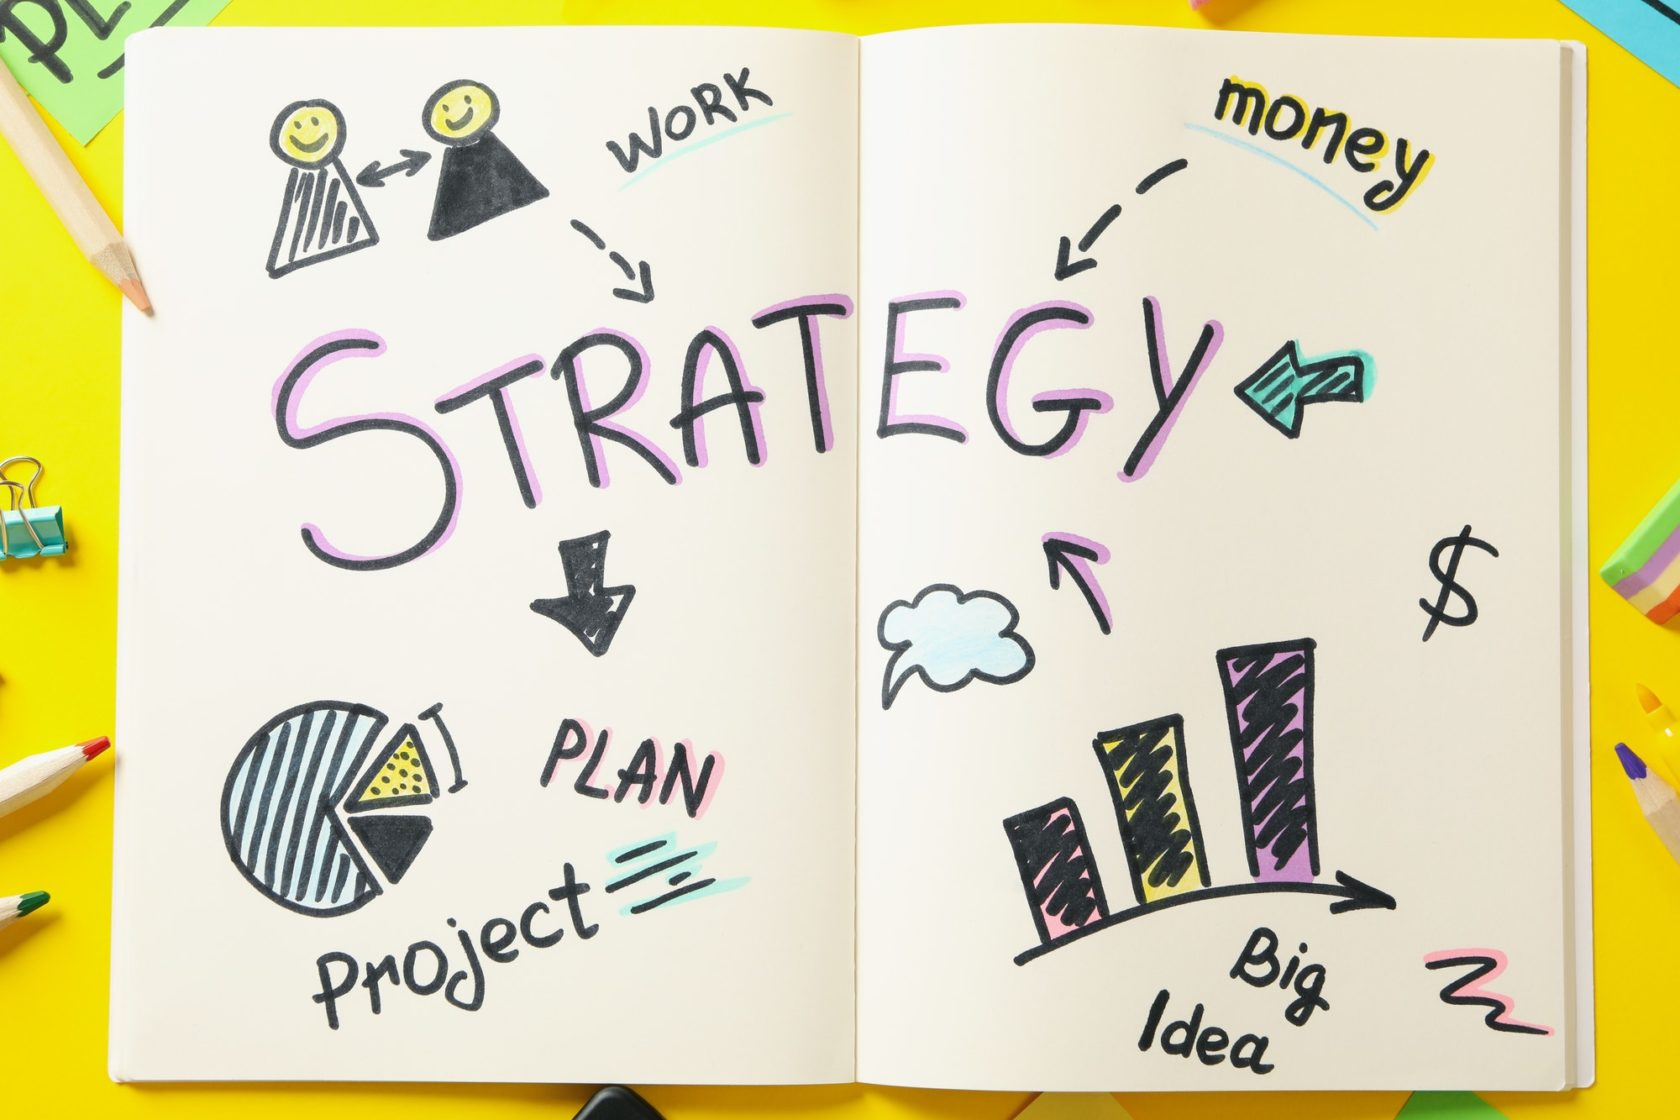 Concept of business strategy on yellow background